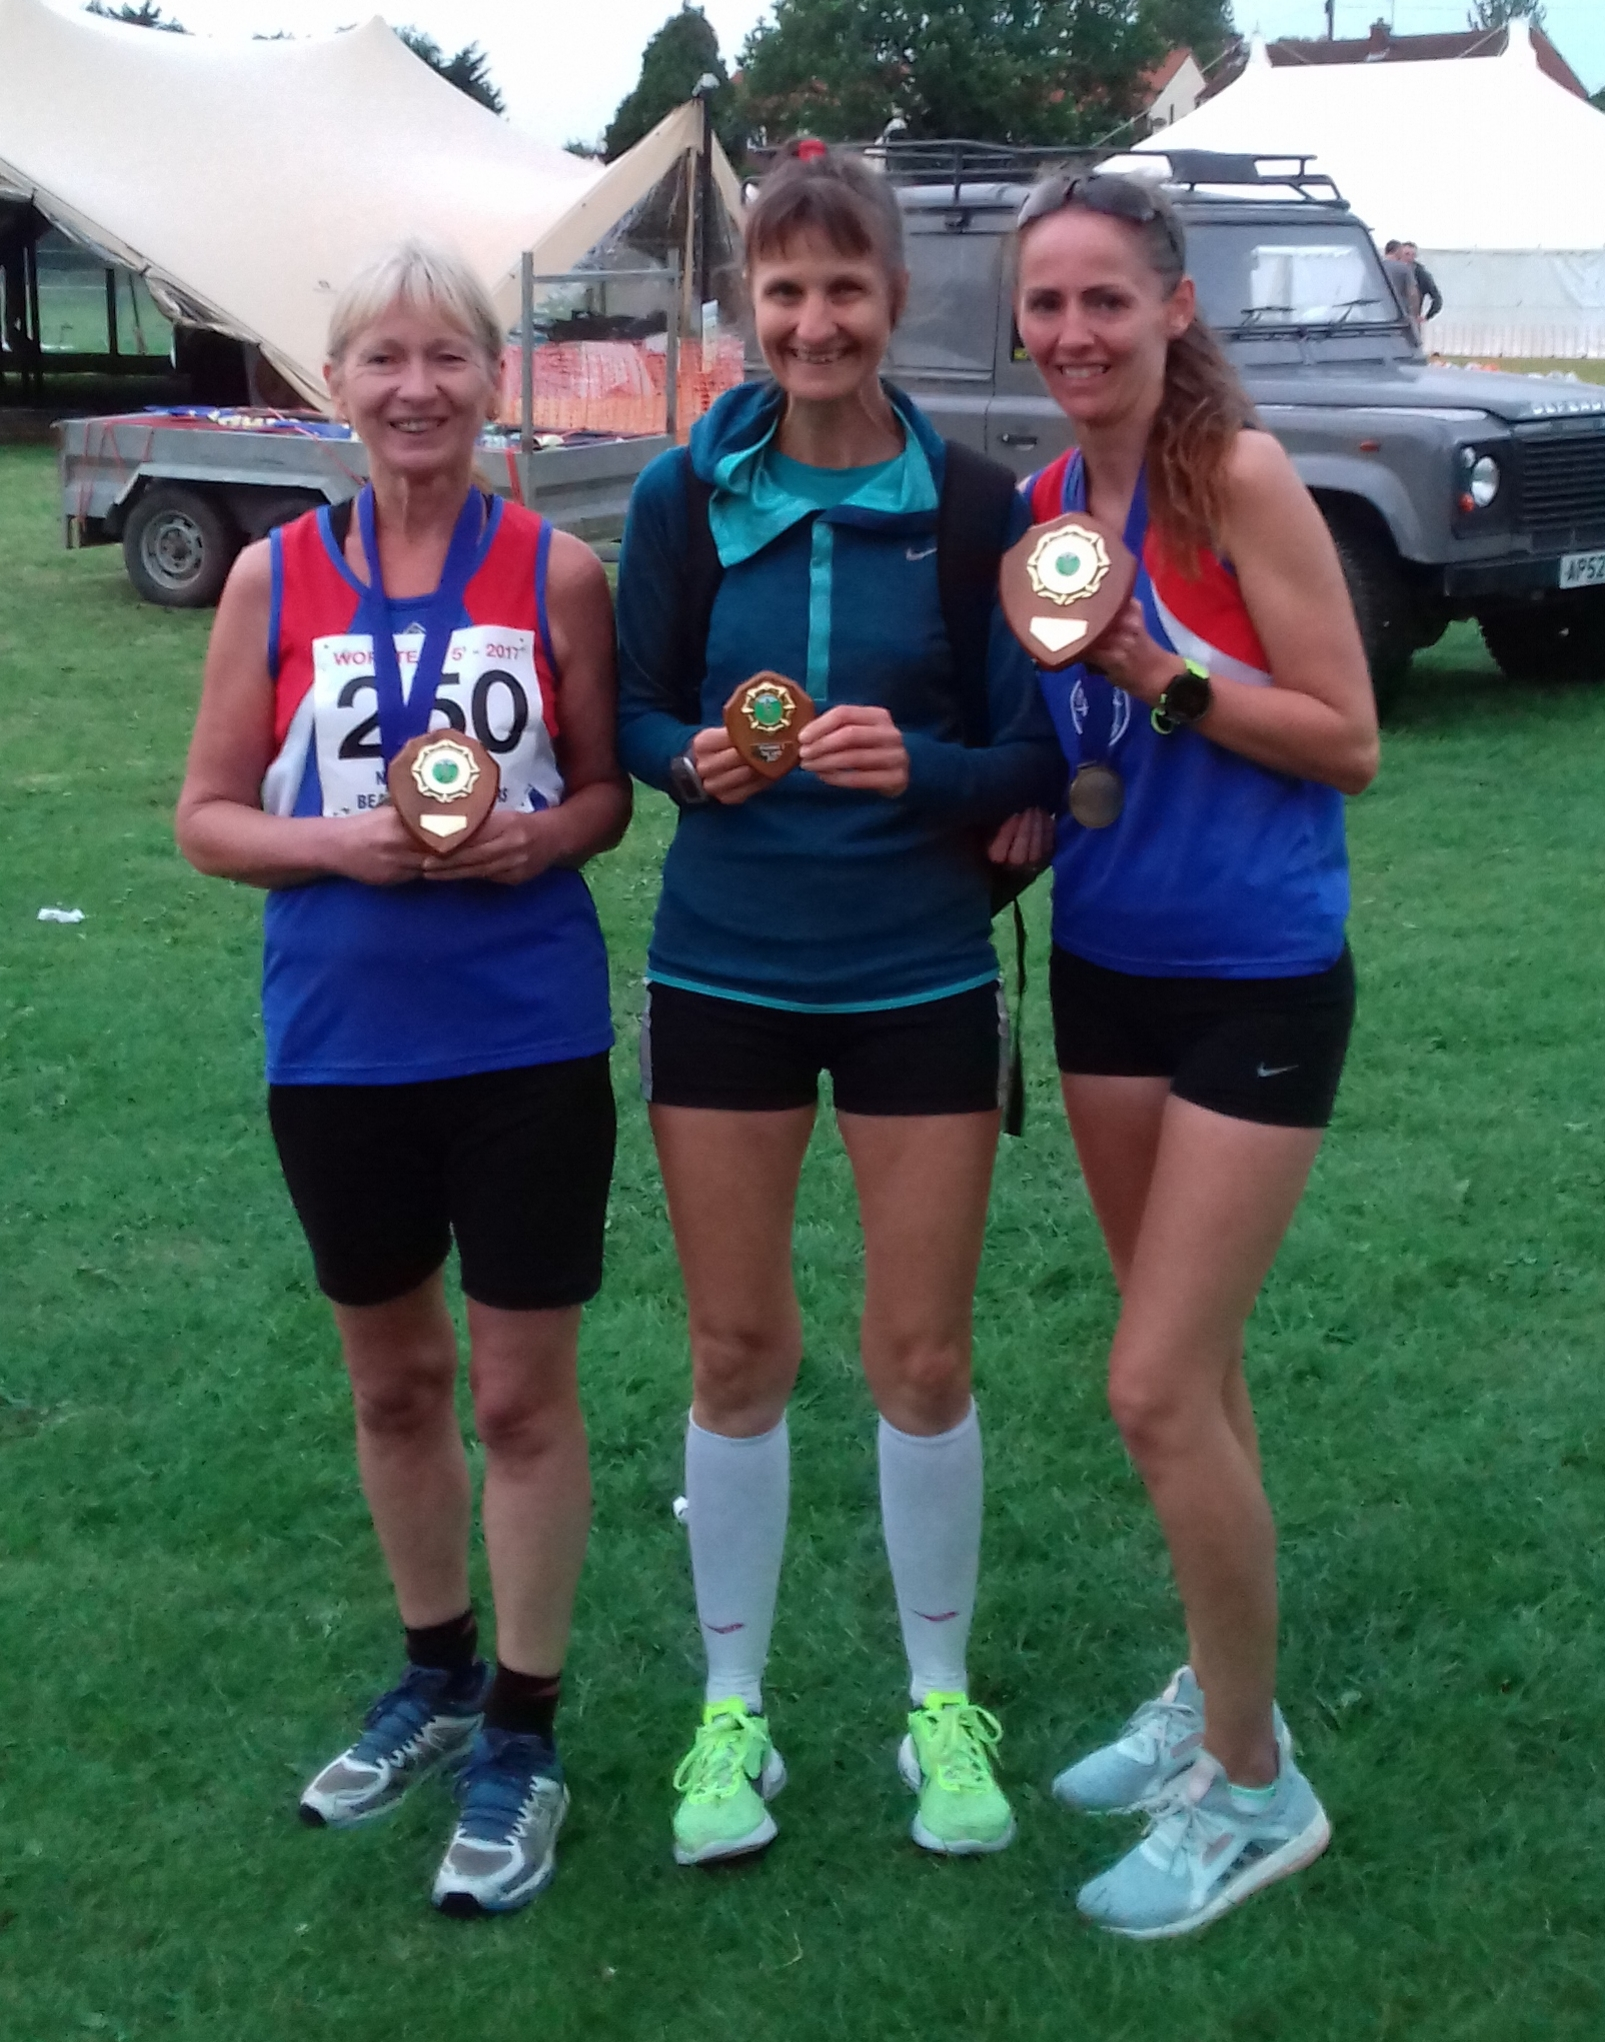 Pauline, Vicky and Penny with their awards.